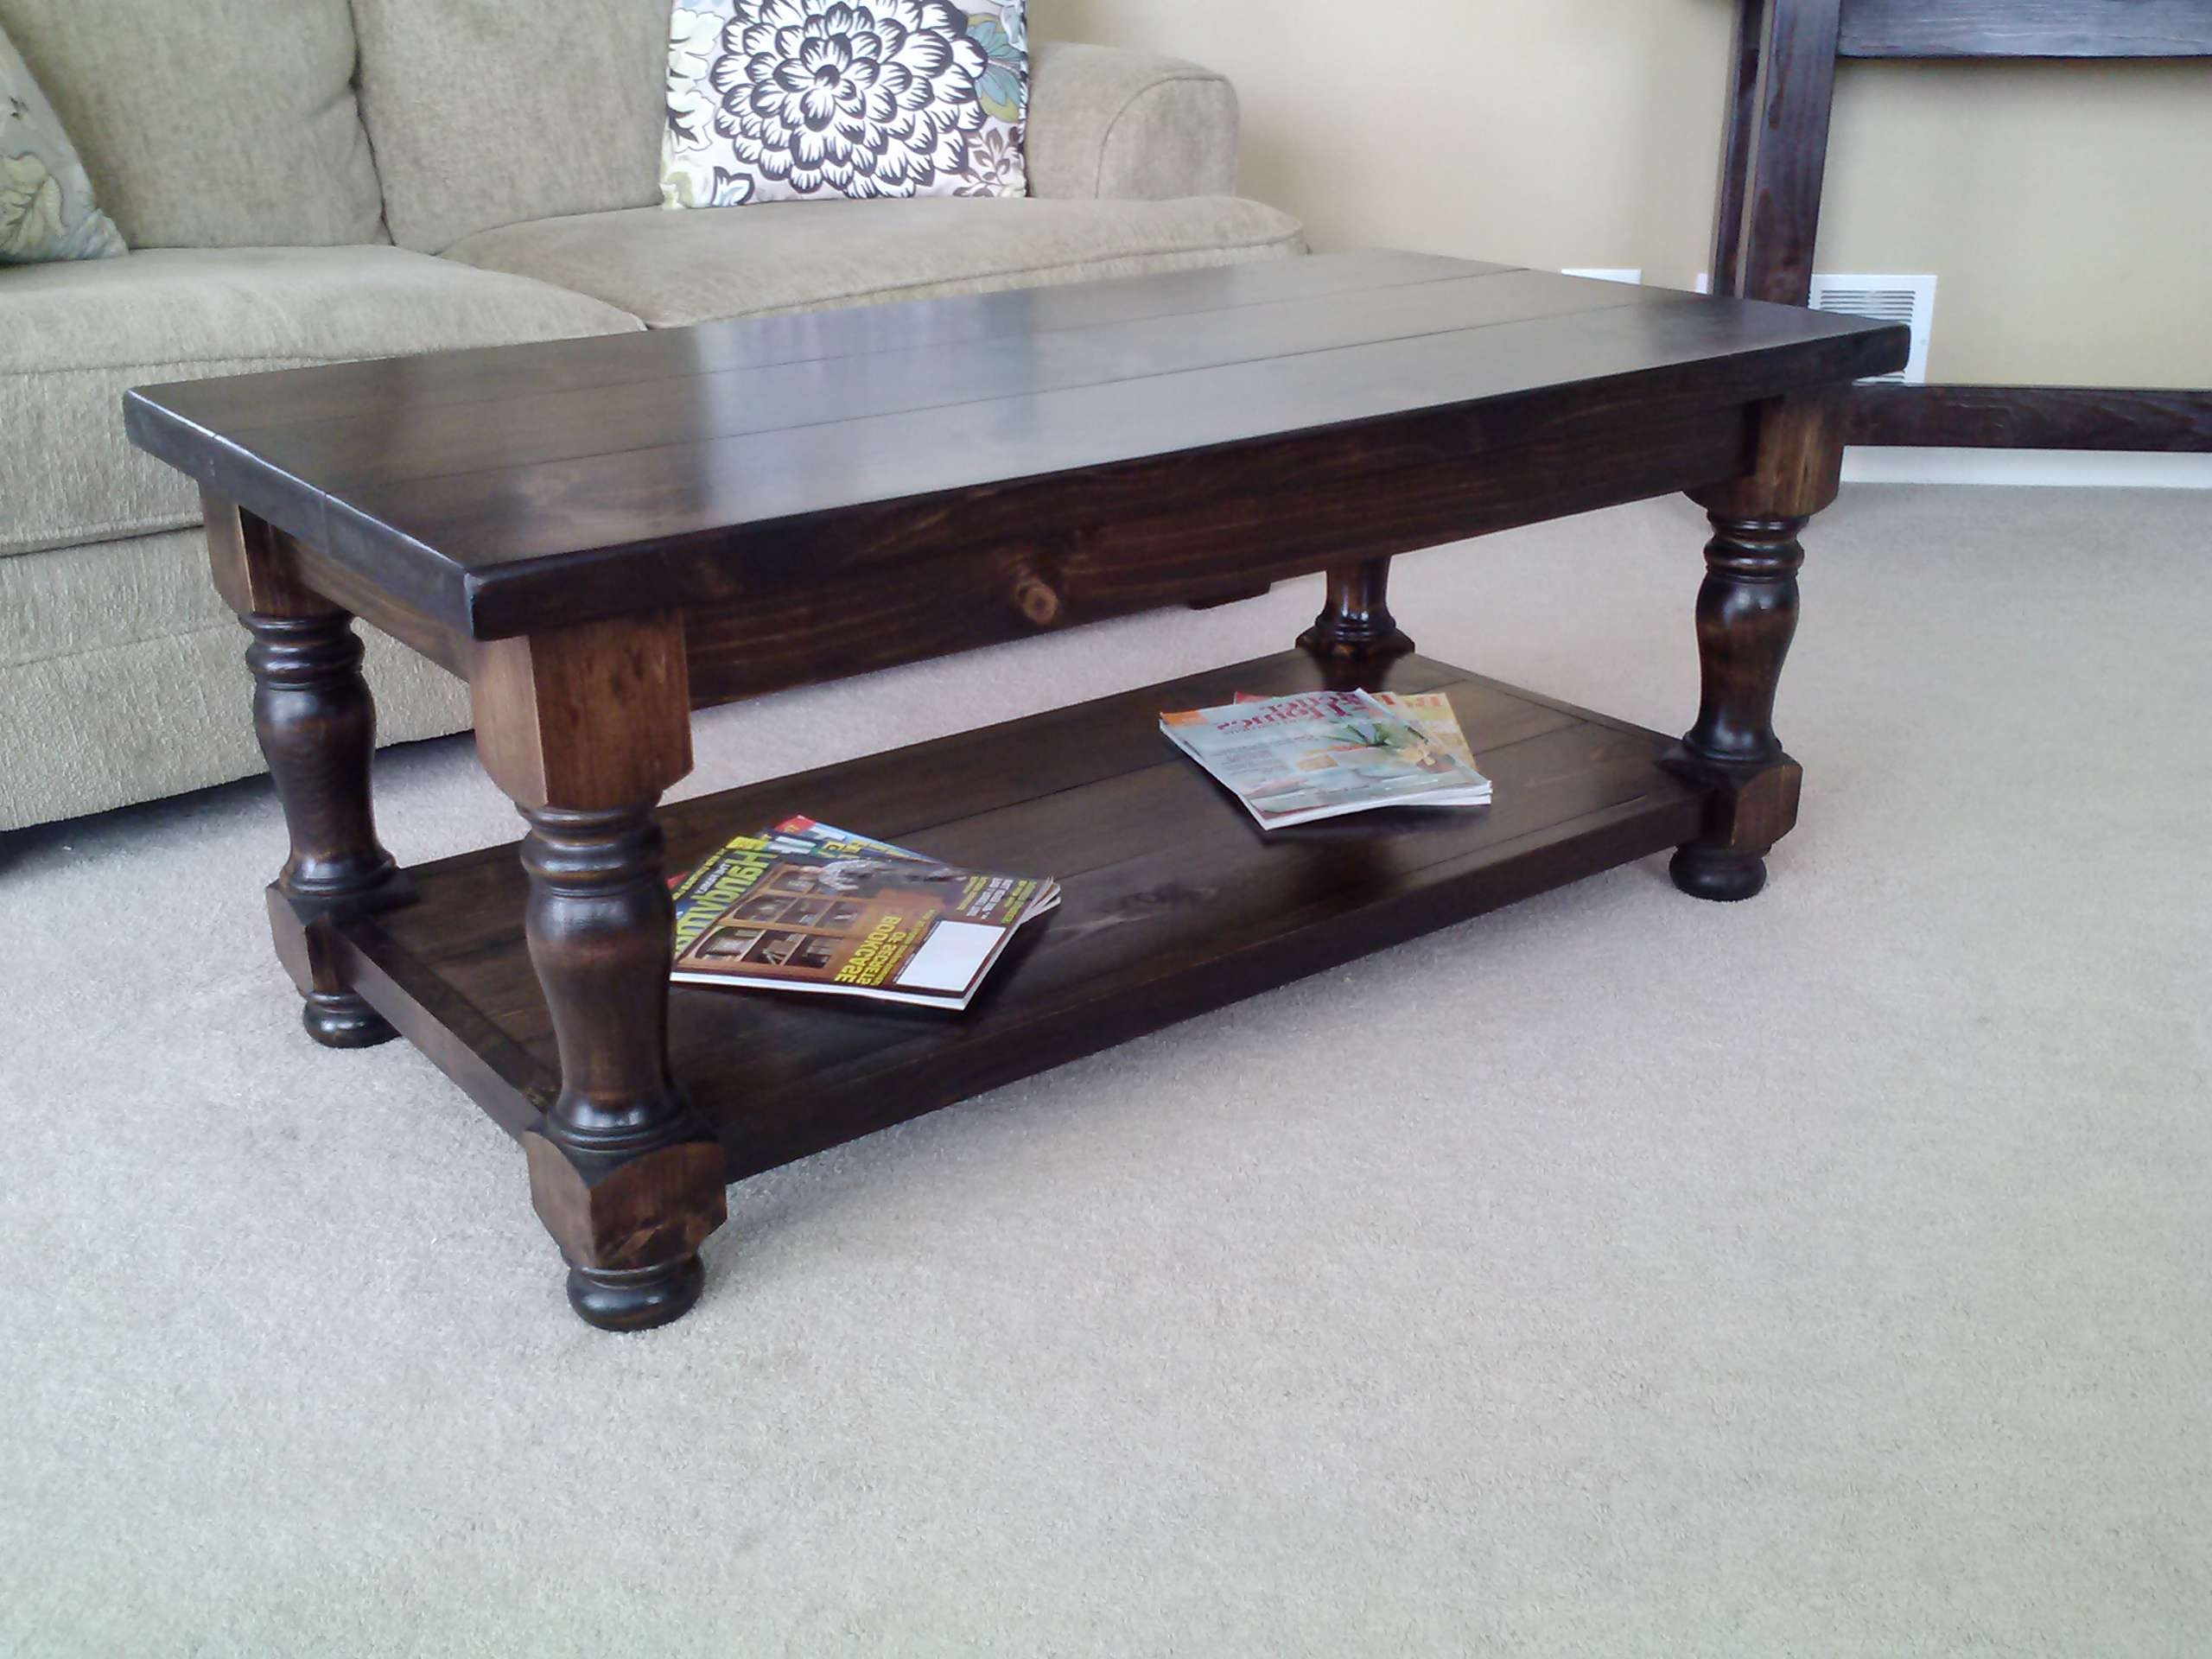 Matching Coffee And End Tables Using The Heritage Table Legs Throughout Trendy Coffee Table With Matching End Tables (View 20 of 20)